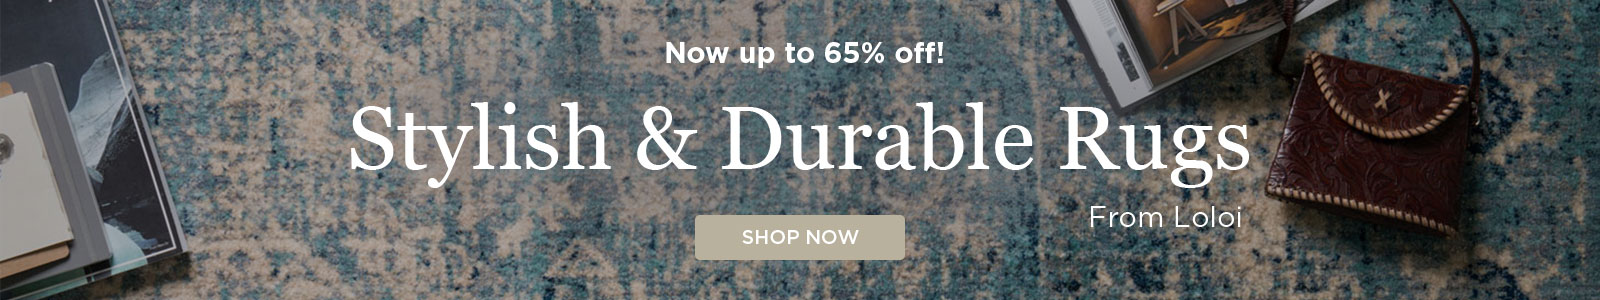 Huge Rug Deals Up to 65% Off